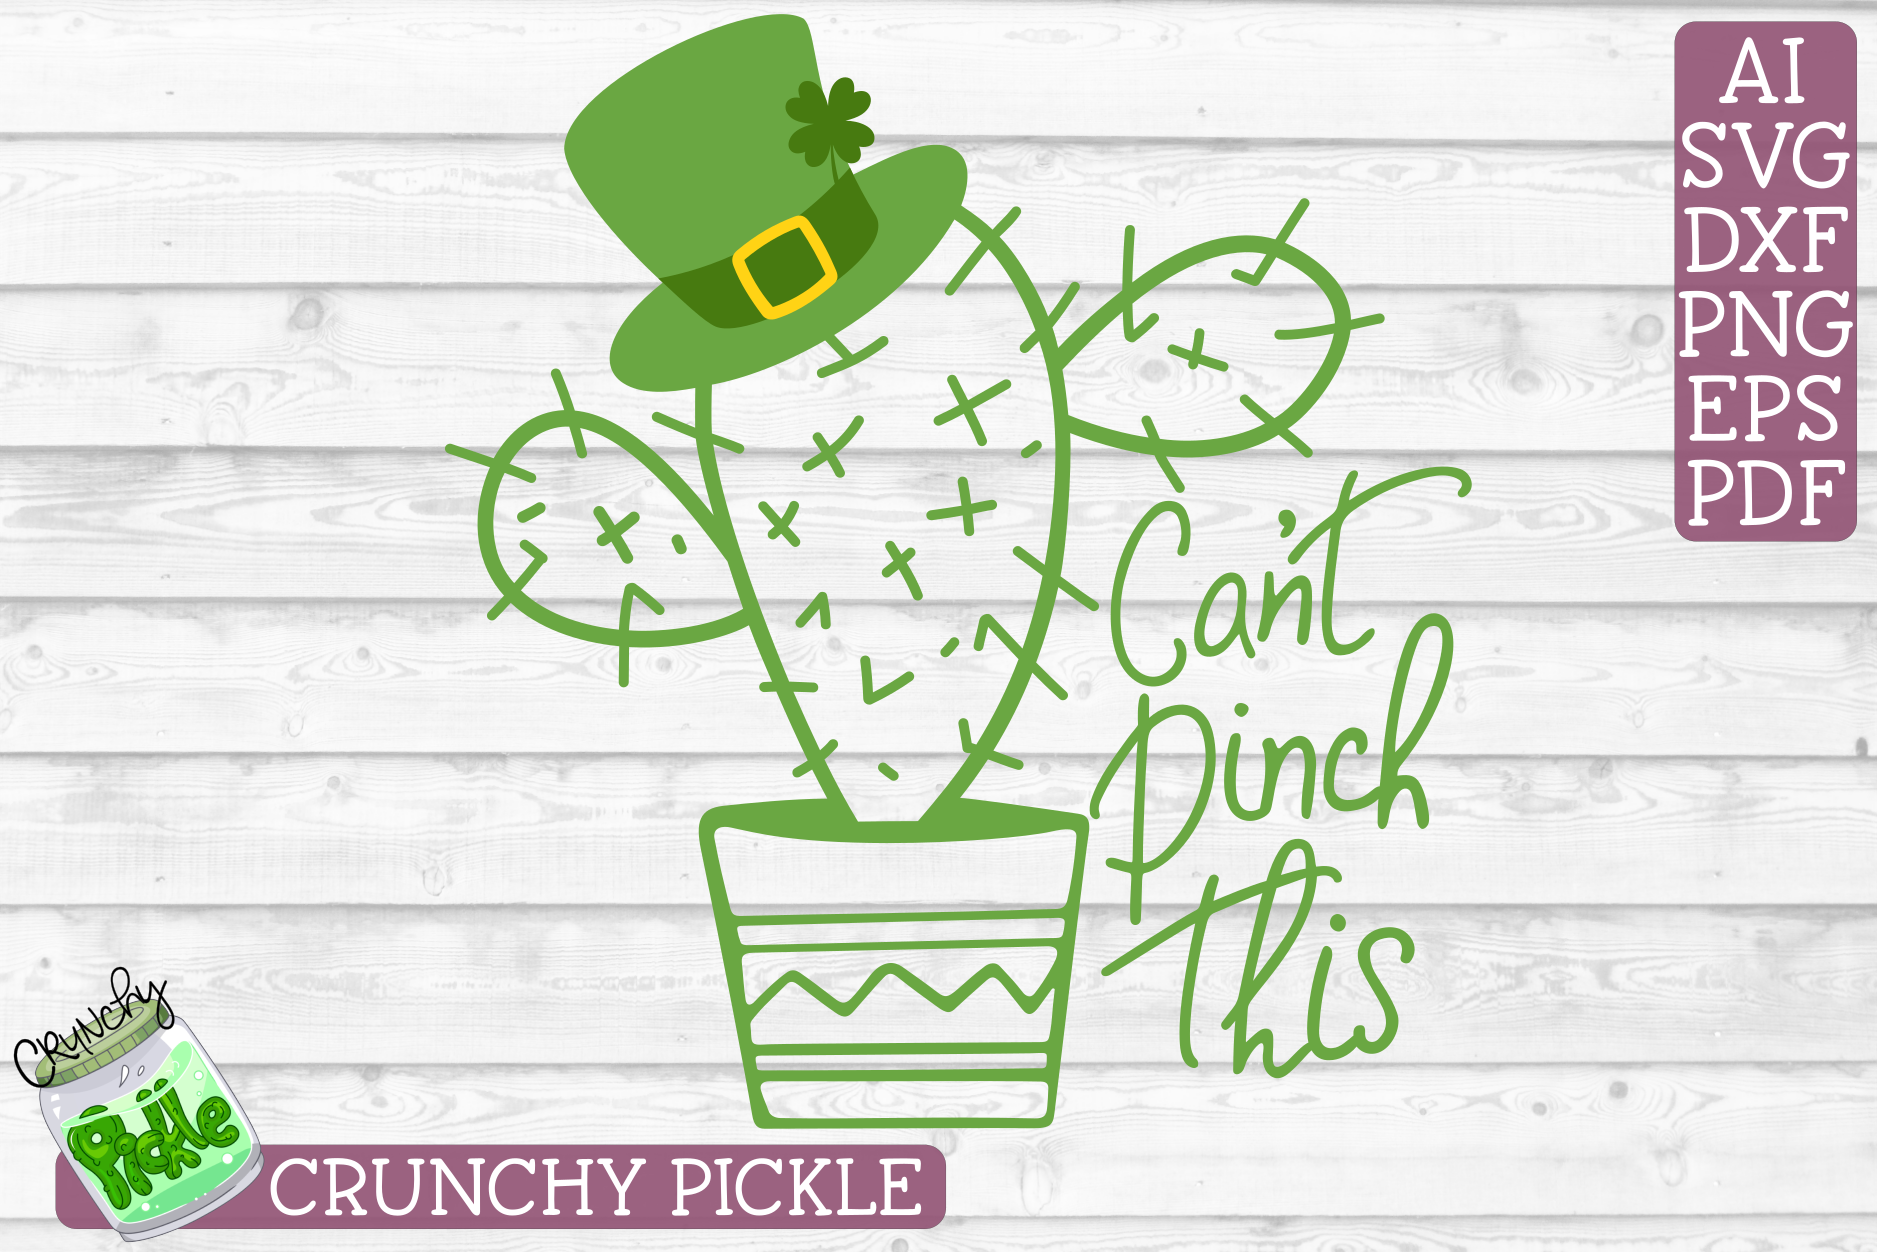 Can't Pinch This Cactus - St Patrick's Day SVG File example image 2